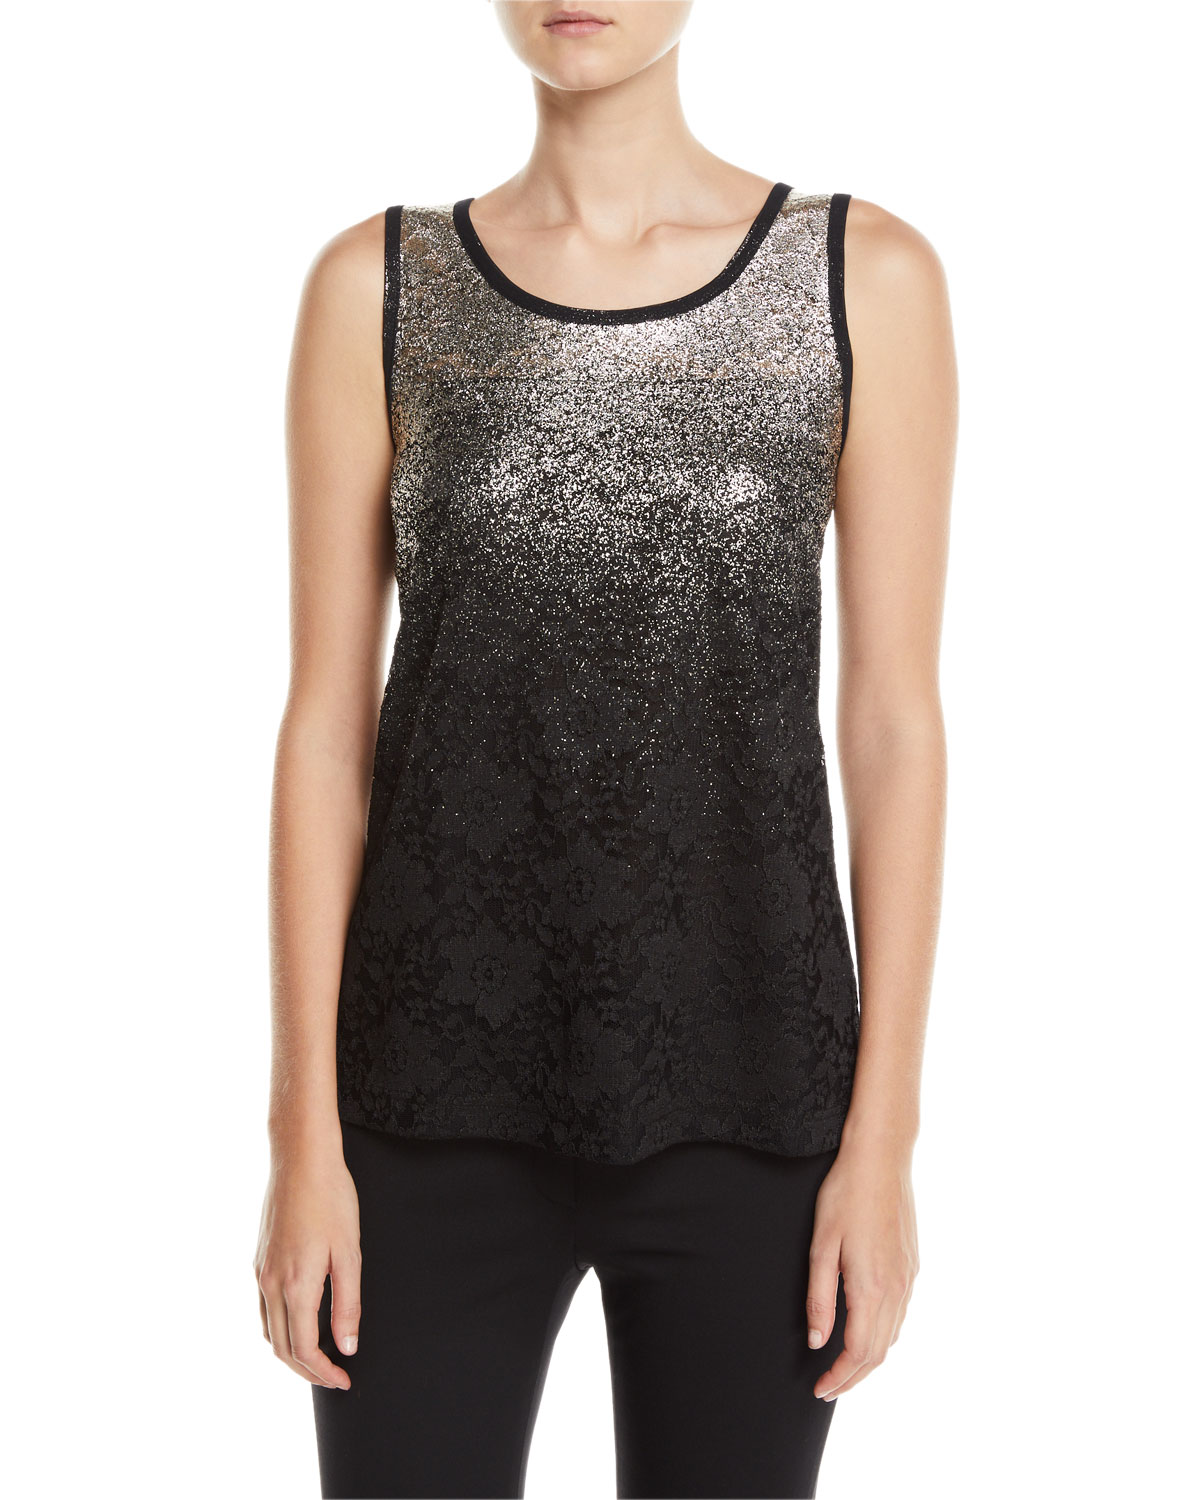 BEREK Speckle-Border Easy Tank Top With Lace, Petite in Multi